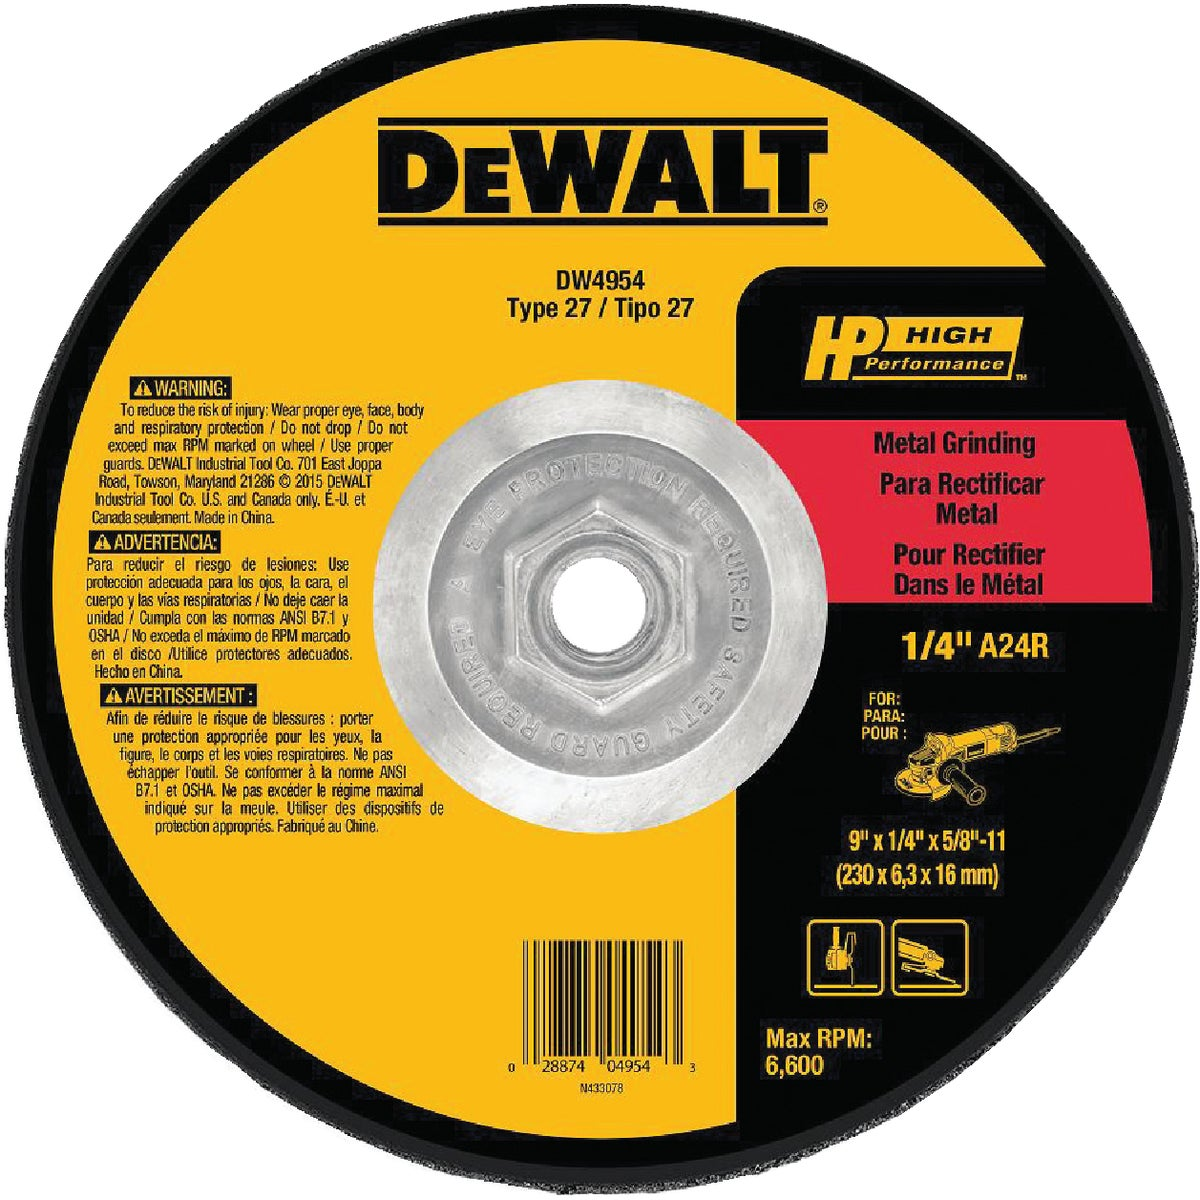 9X1/4X5/8-11 GRIND WHEEL - DW4954 by DeWalt